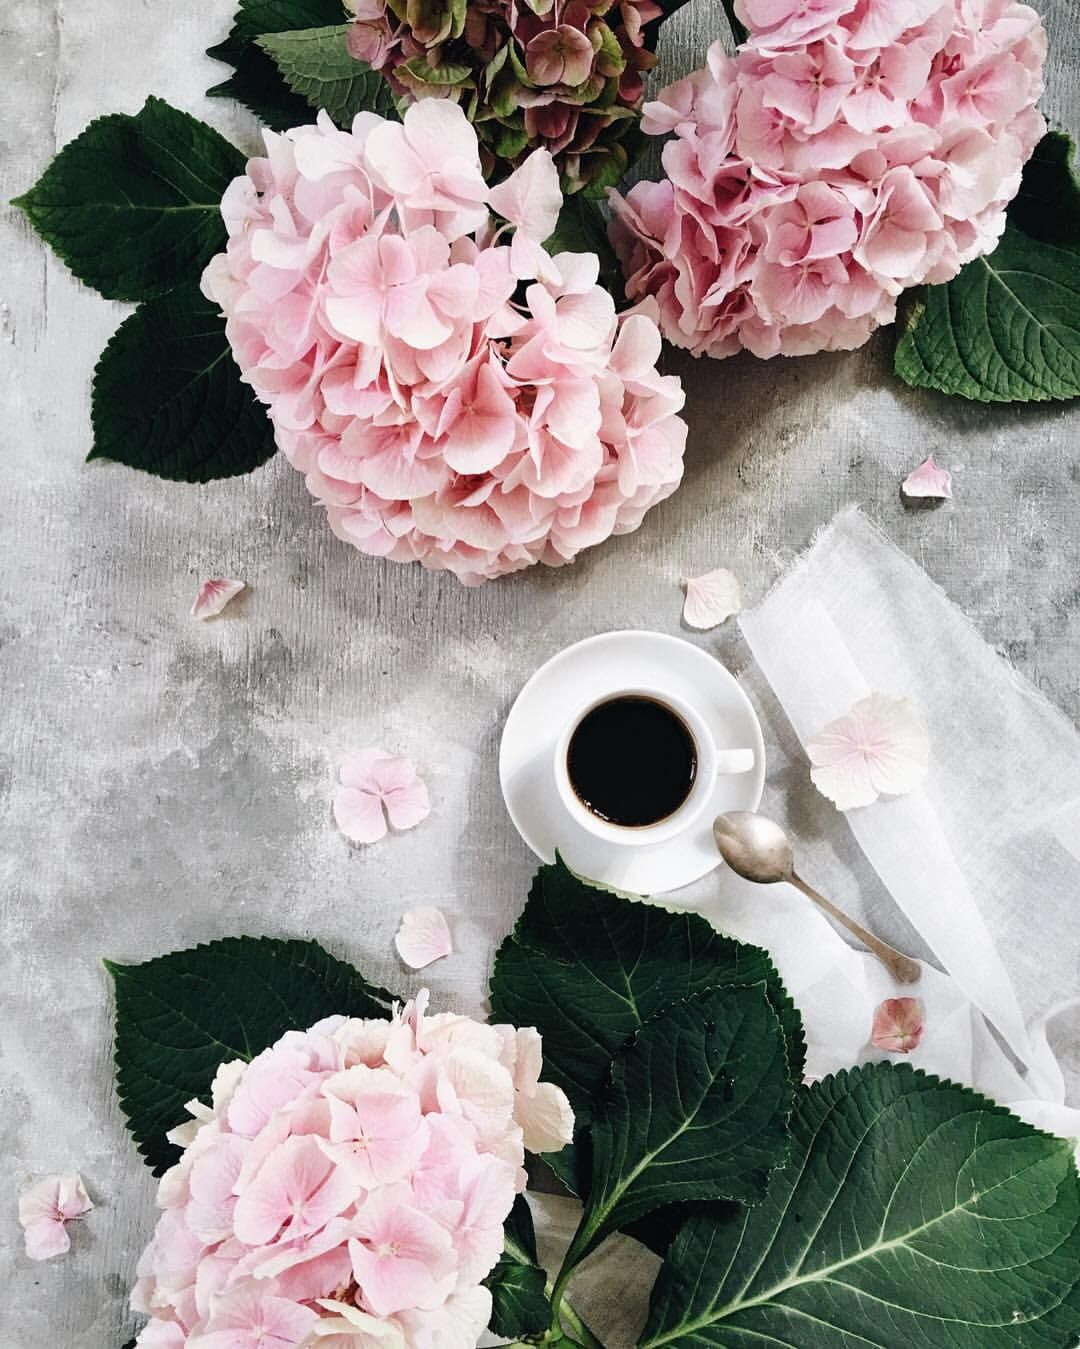 Wishing you all a wonderful start to the new week with hot cup of coffee and hydrangea from the market Всем хорошей недели,крепкого кофе и… #cupofcoffee